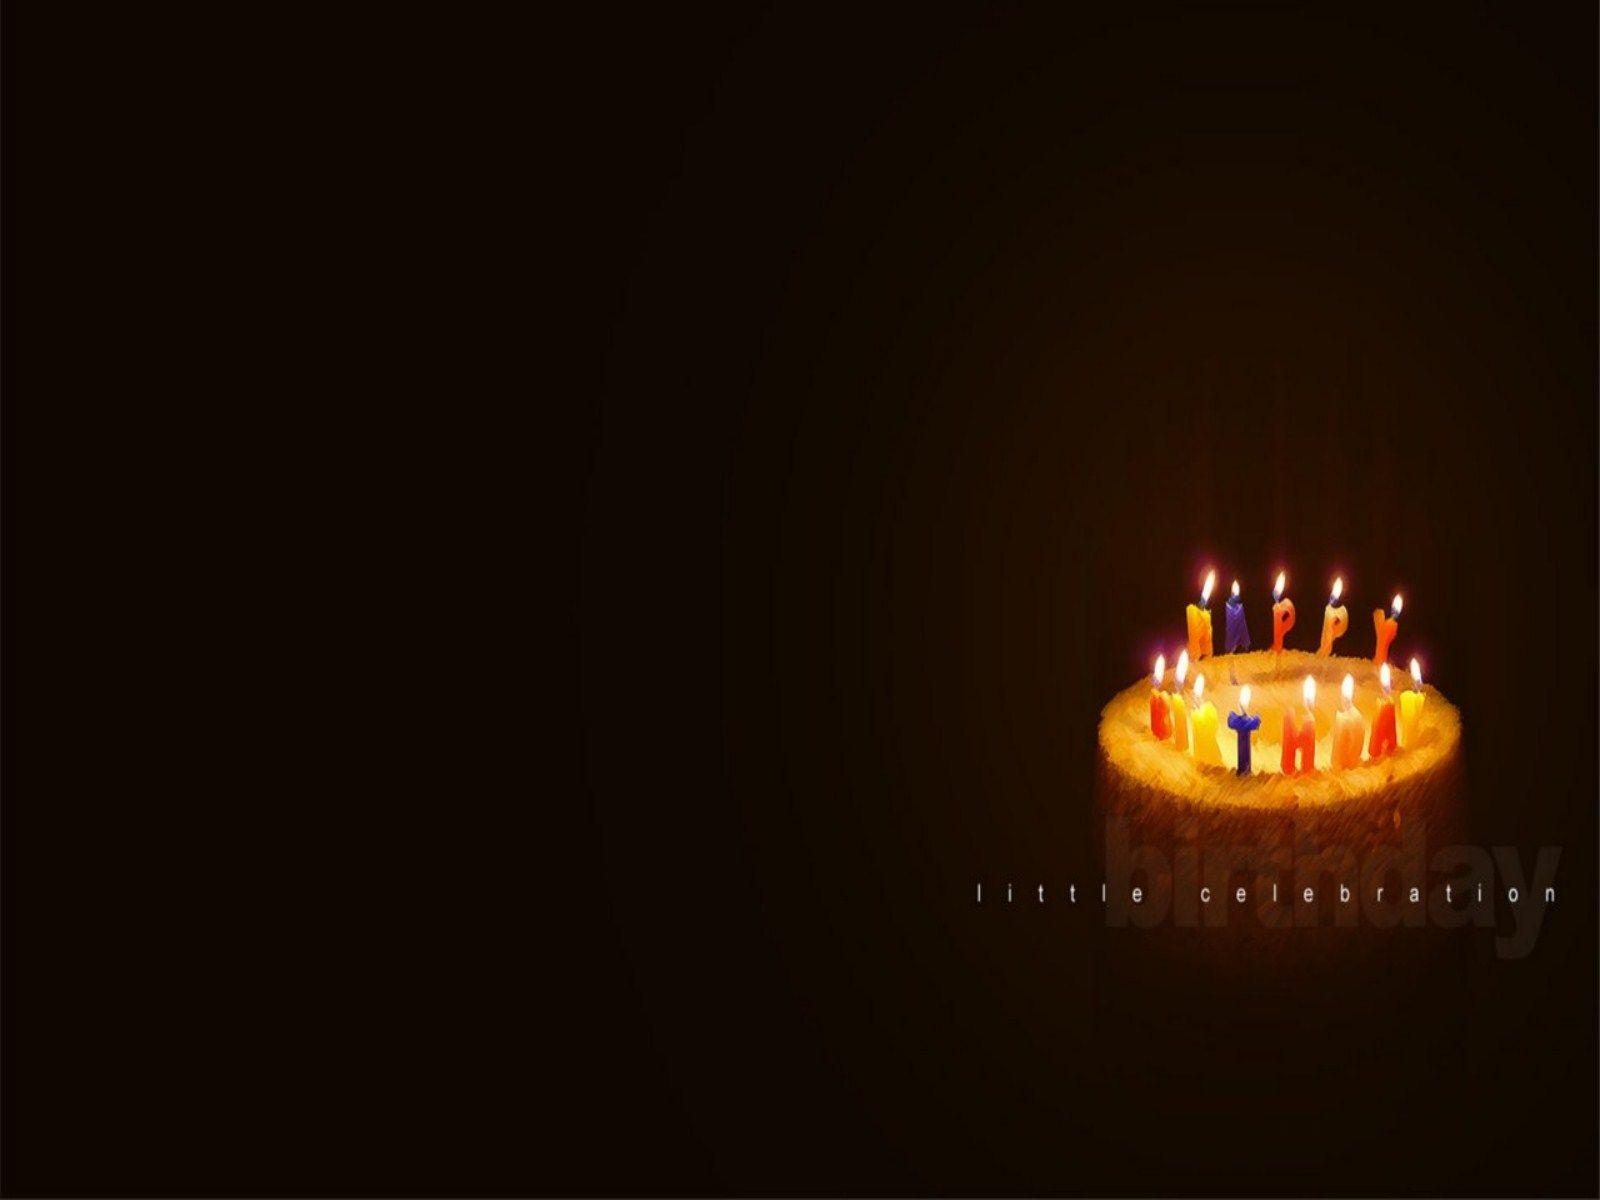 Happy birthday cake backgrounds pics 2